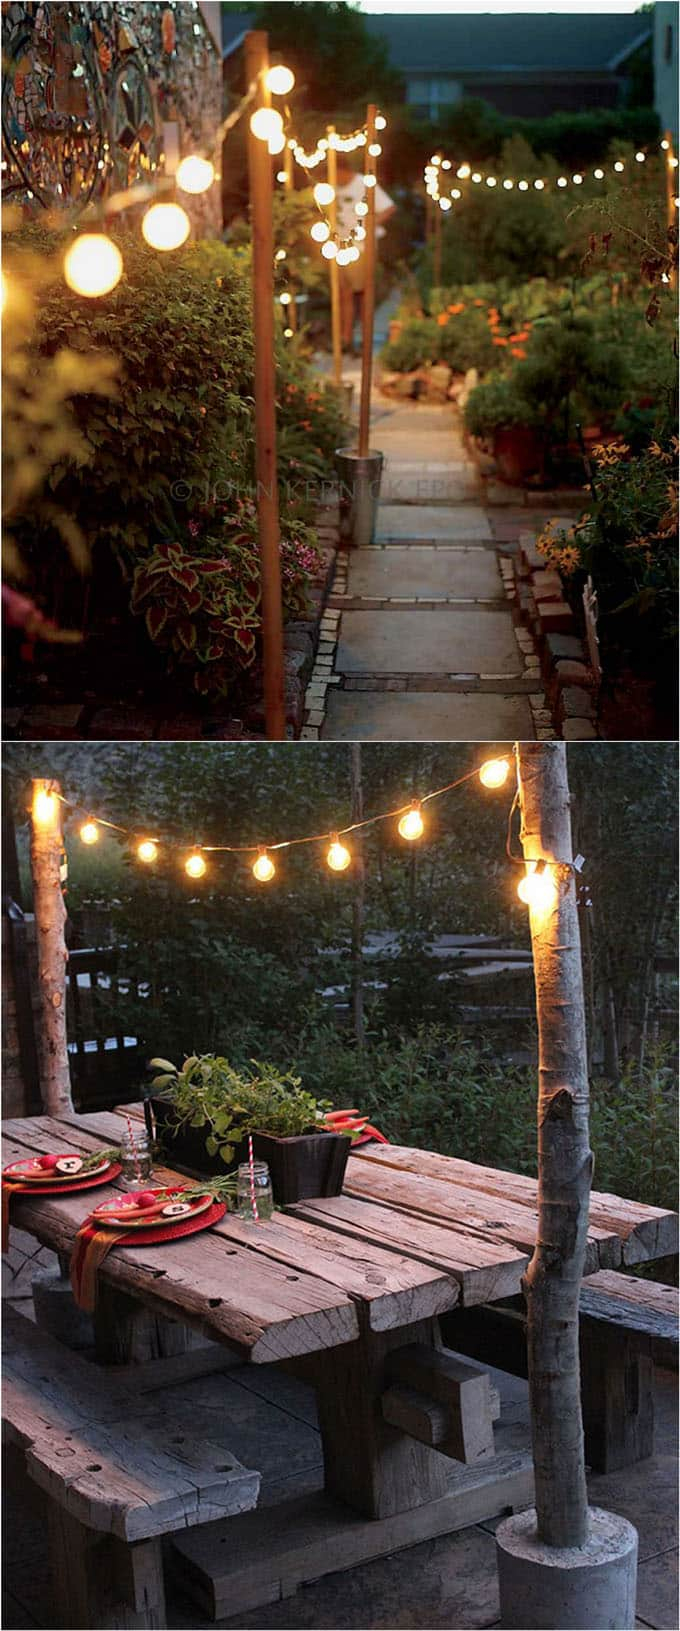 28 Stunning Diy Outdoor Lighting Ideas So Easy A Piece Of intended for 14 Smart Initiatives of How to Improve Lighting Ideas For Backyard Party